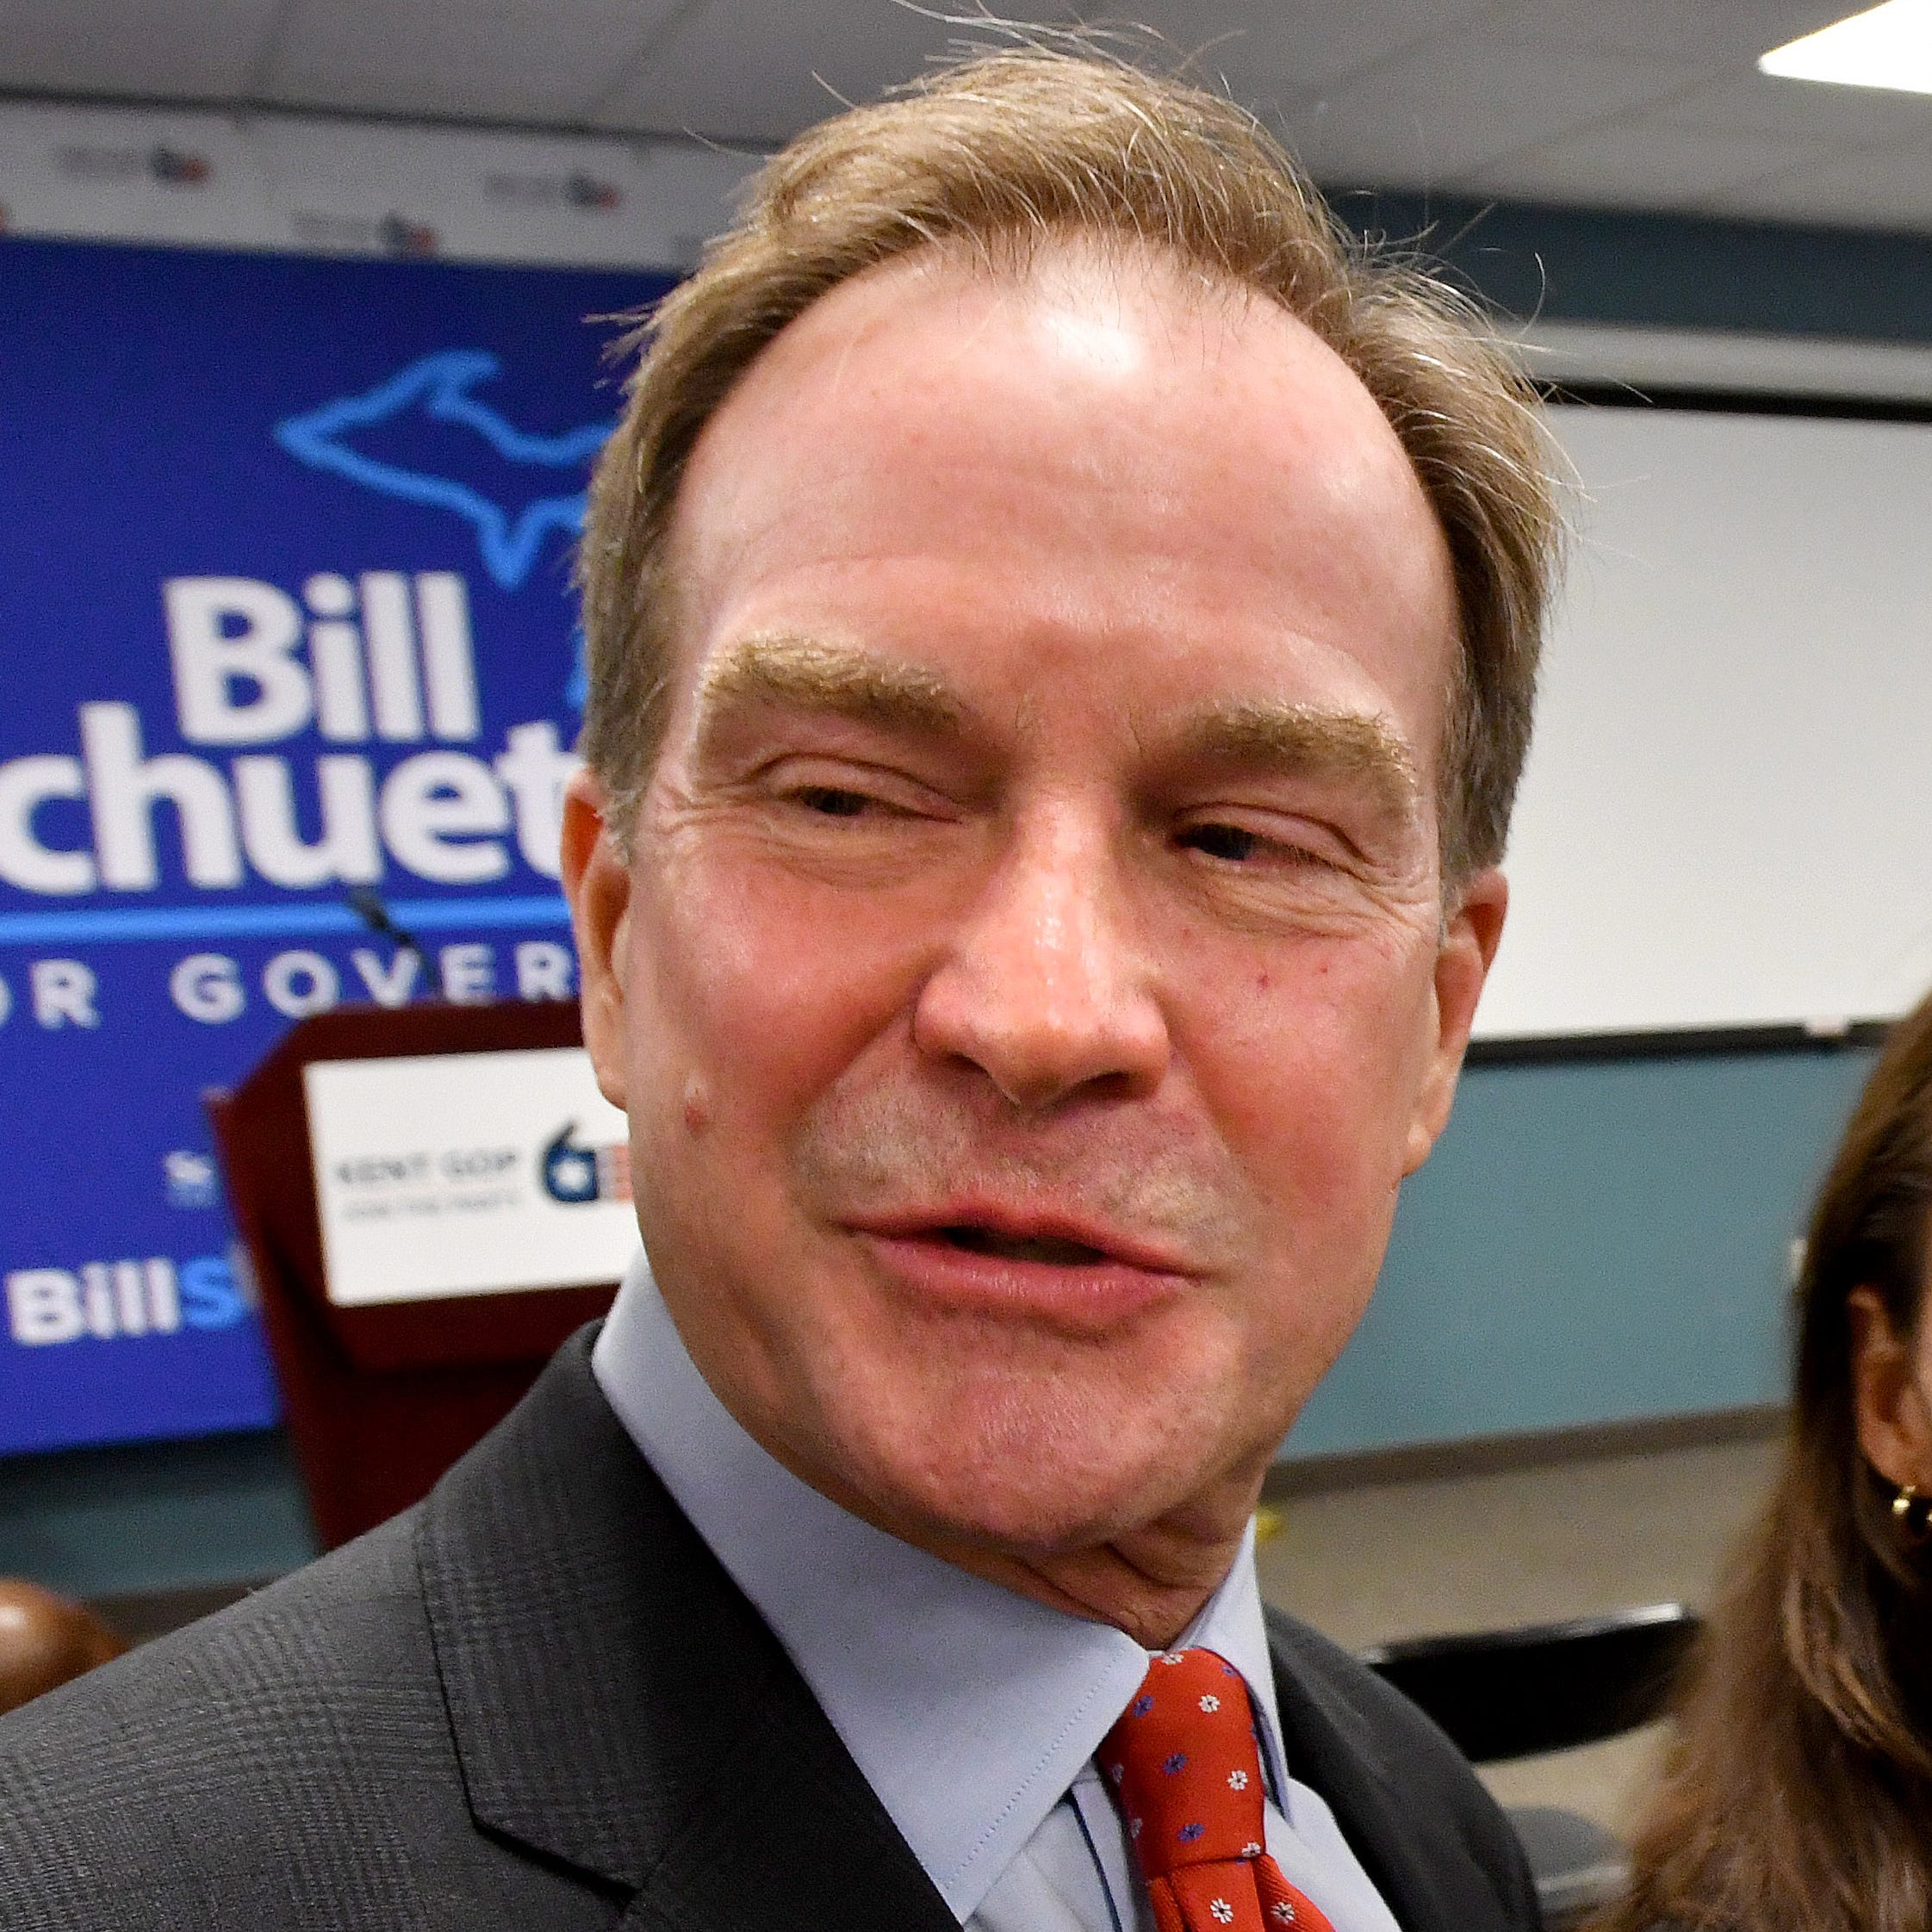 Bankole: The unlikely healthcare conversion of Michigan gubernatorial candidate Schuette